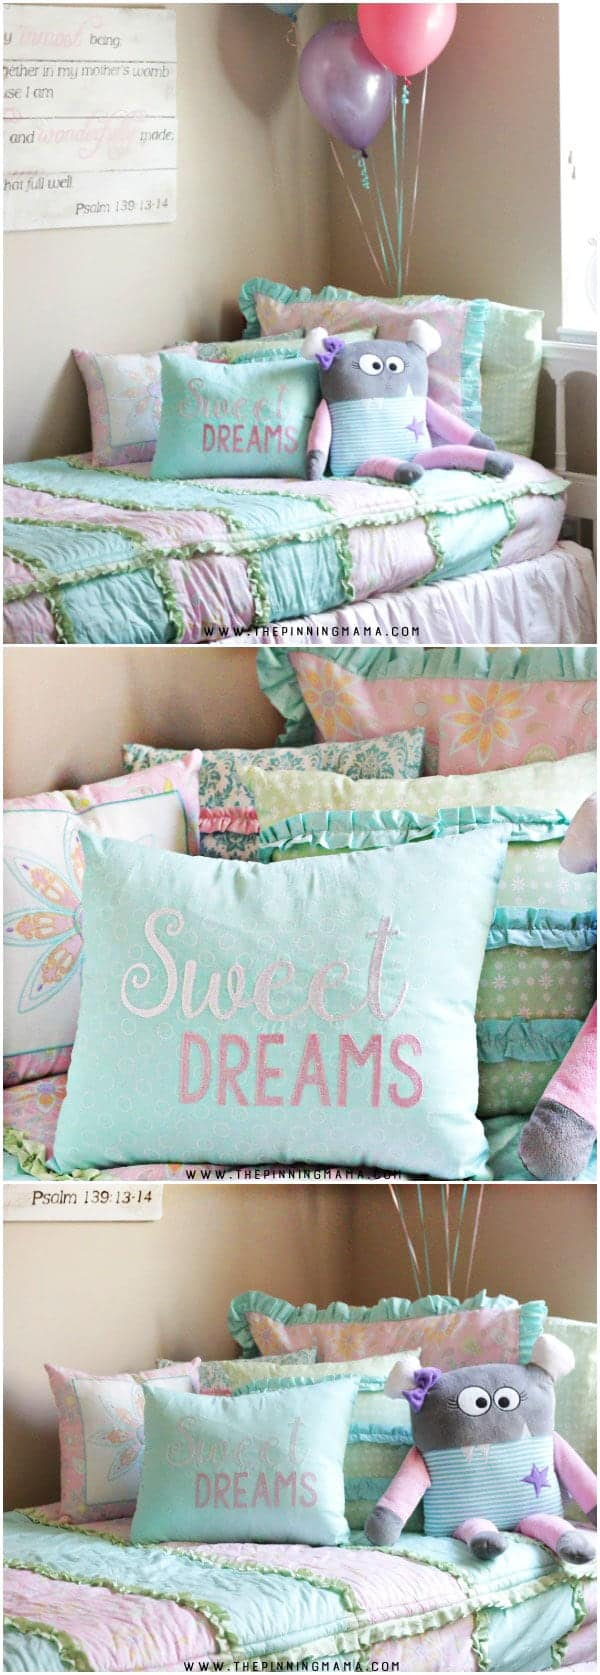 I absolutely love the details on this bedding for a shabby chic girls room! There are ruffles, embroidery, and all sorts of perfect details on it!